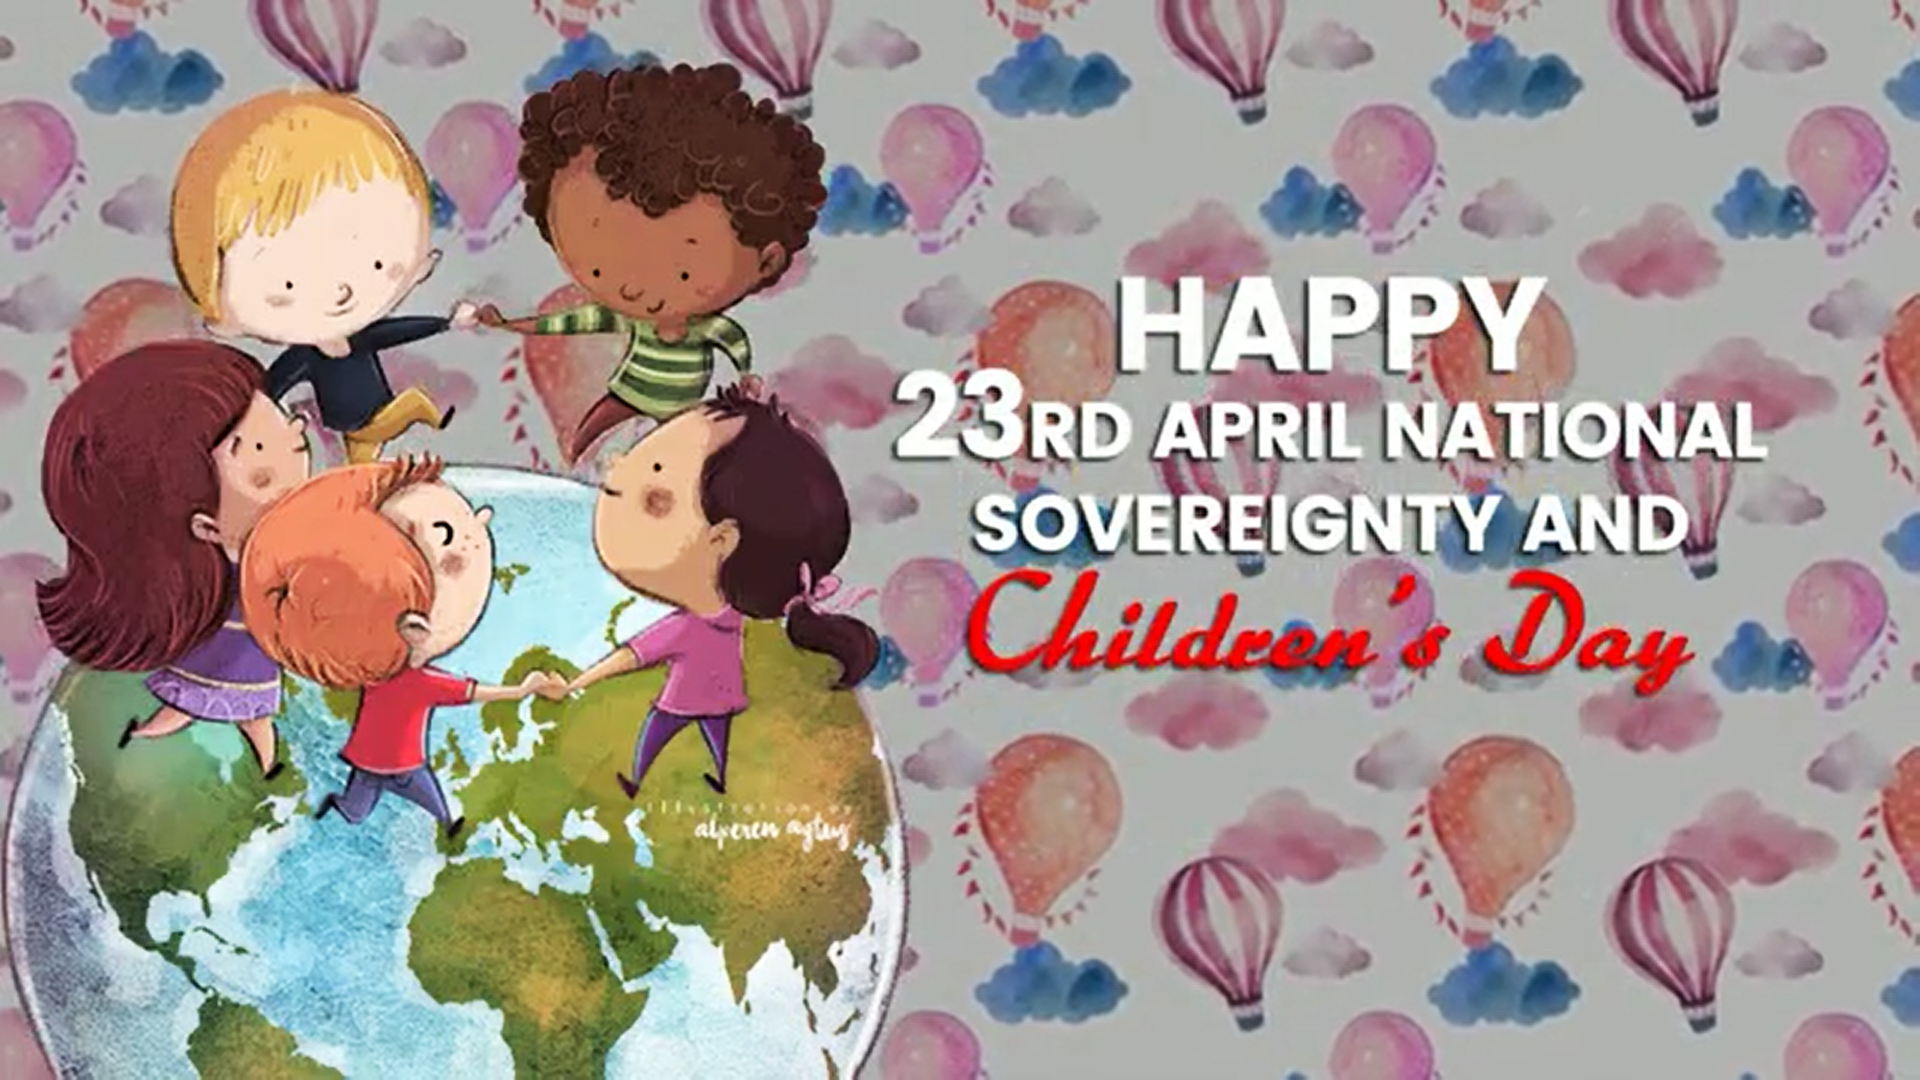 Happy 23rd April National Sovereignty & Children's Day